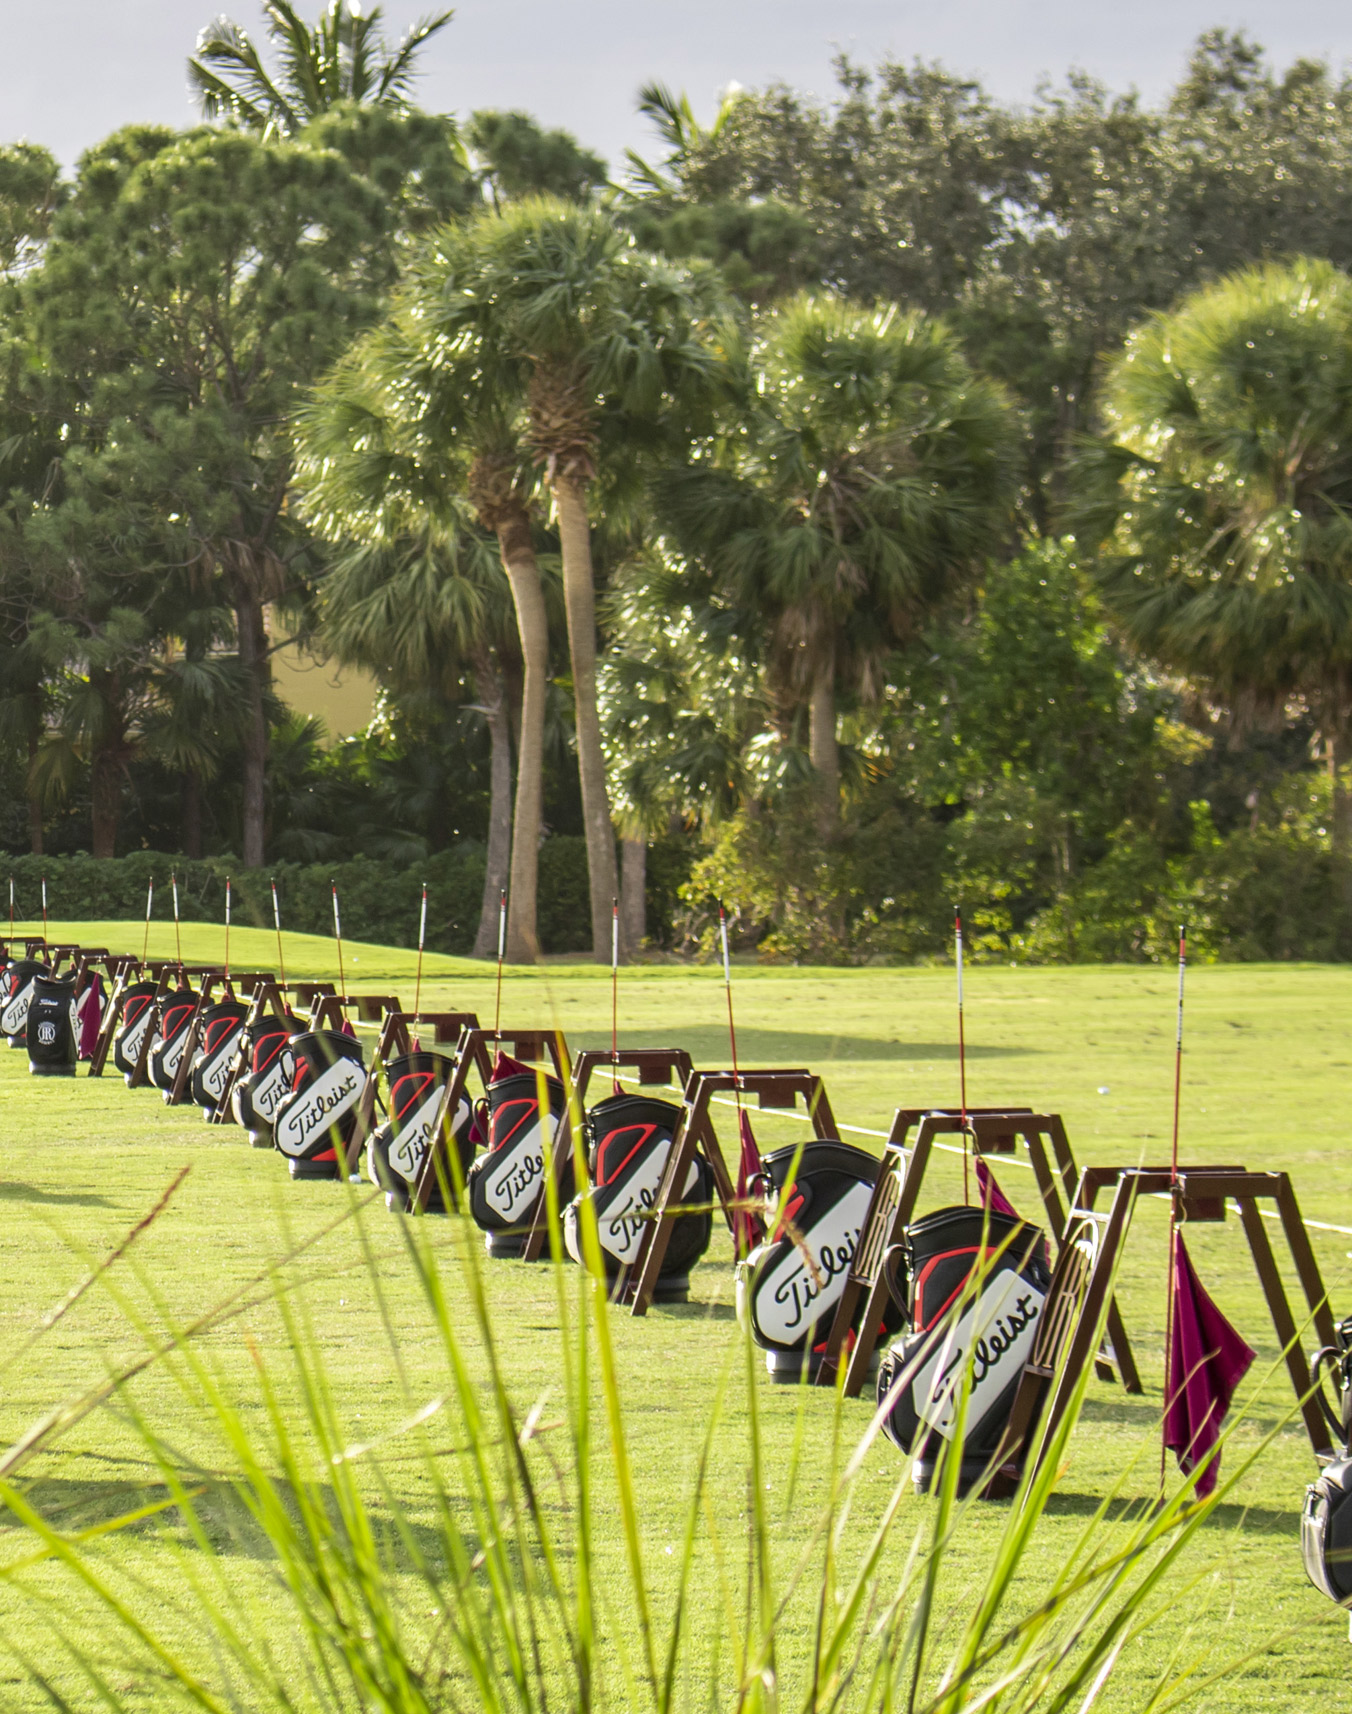 Golf bags lined up at Addison Reserve in Florida